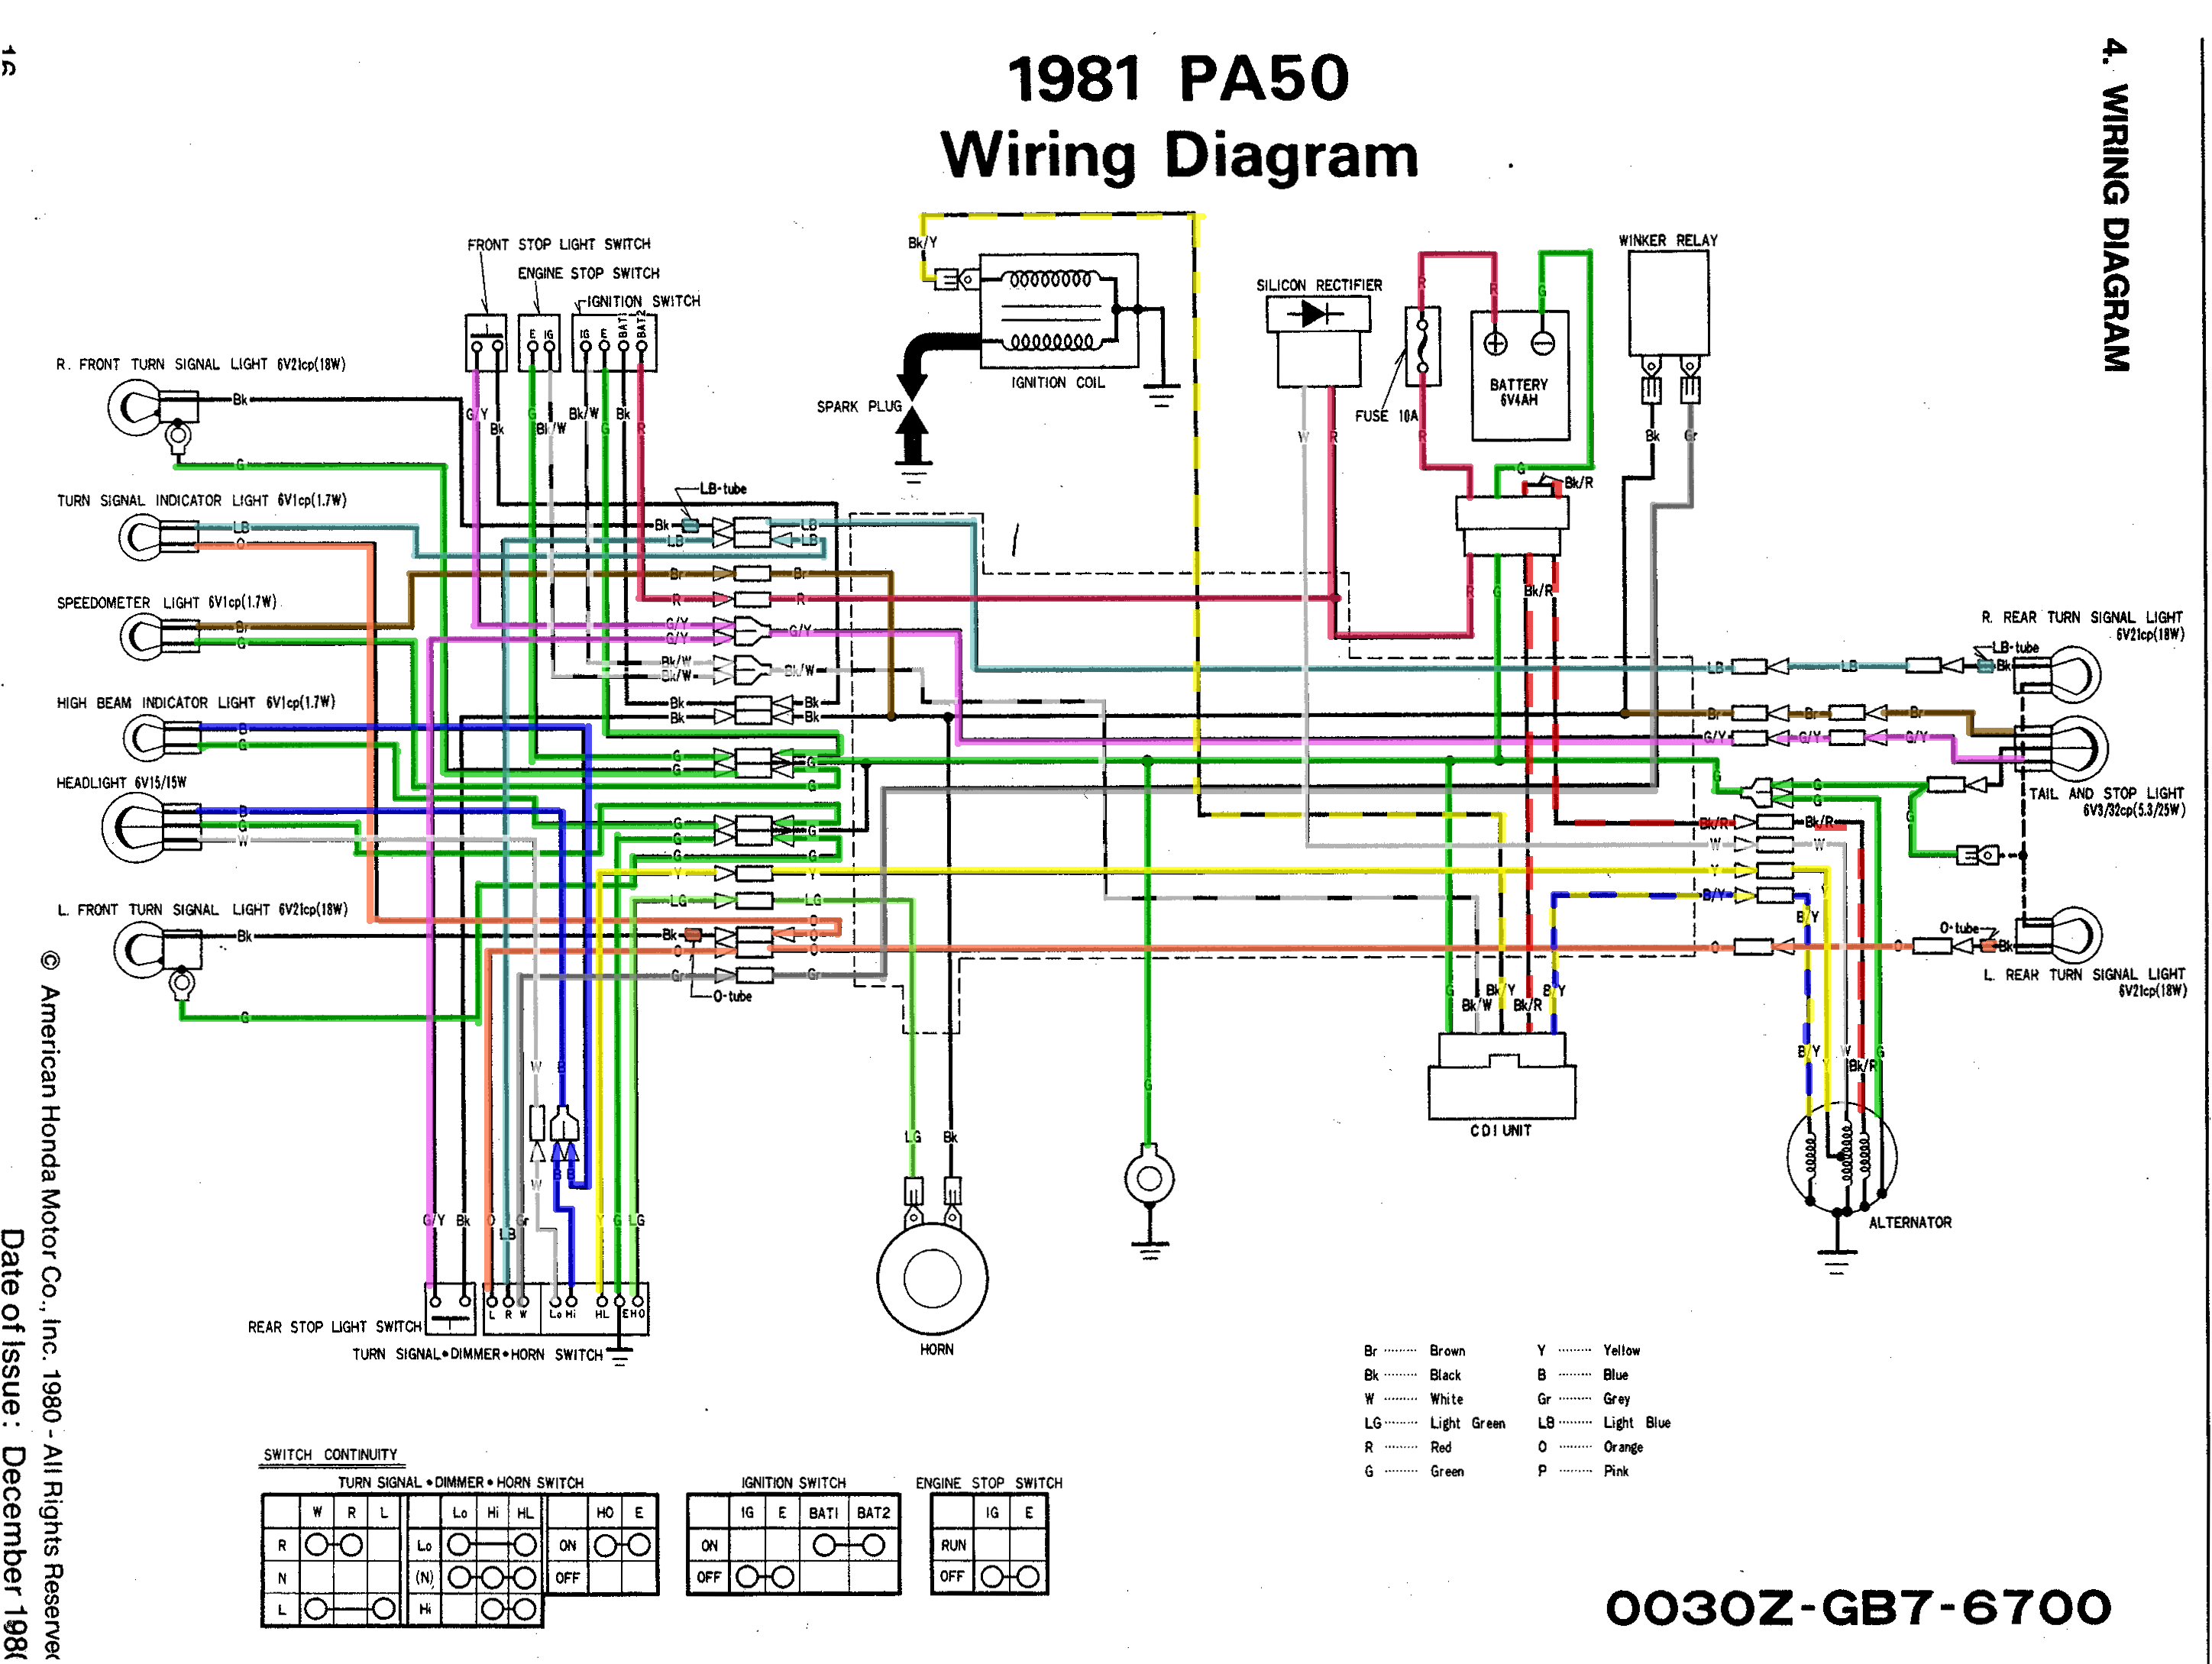 DIAGRAM] Honda Pa50 Wiring Diagram FULL Version HD Quality Wiring Diagram -  EN-WIREDX1.FIMENOR.FRen-wiredx1.fimenor.fr